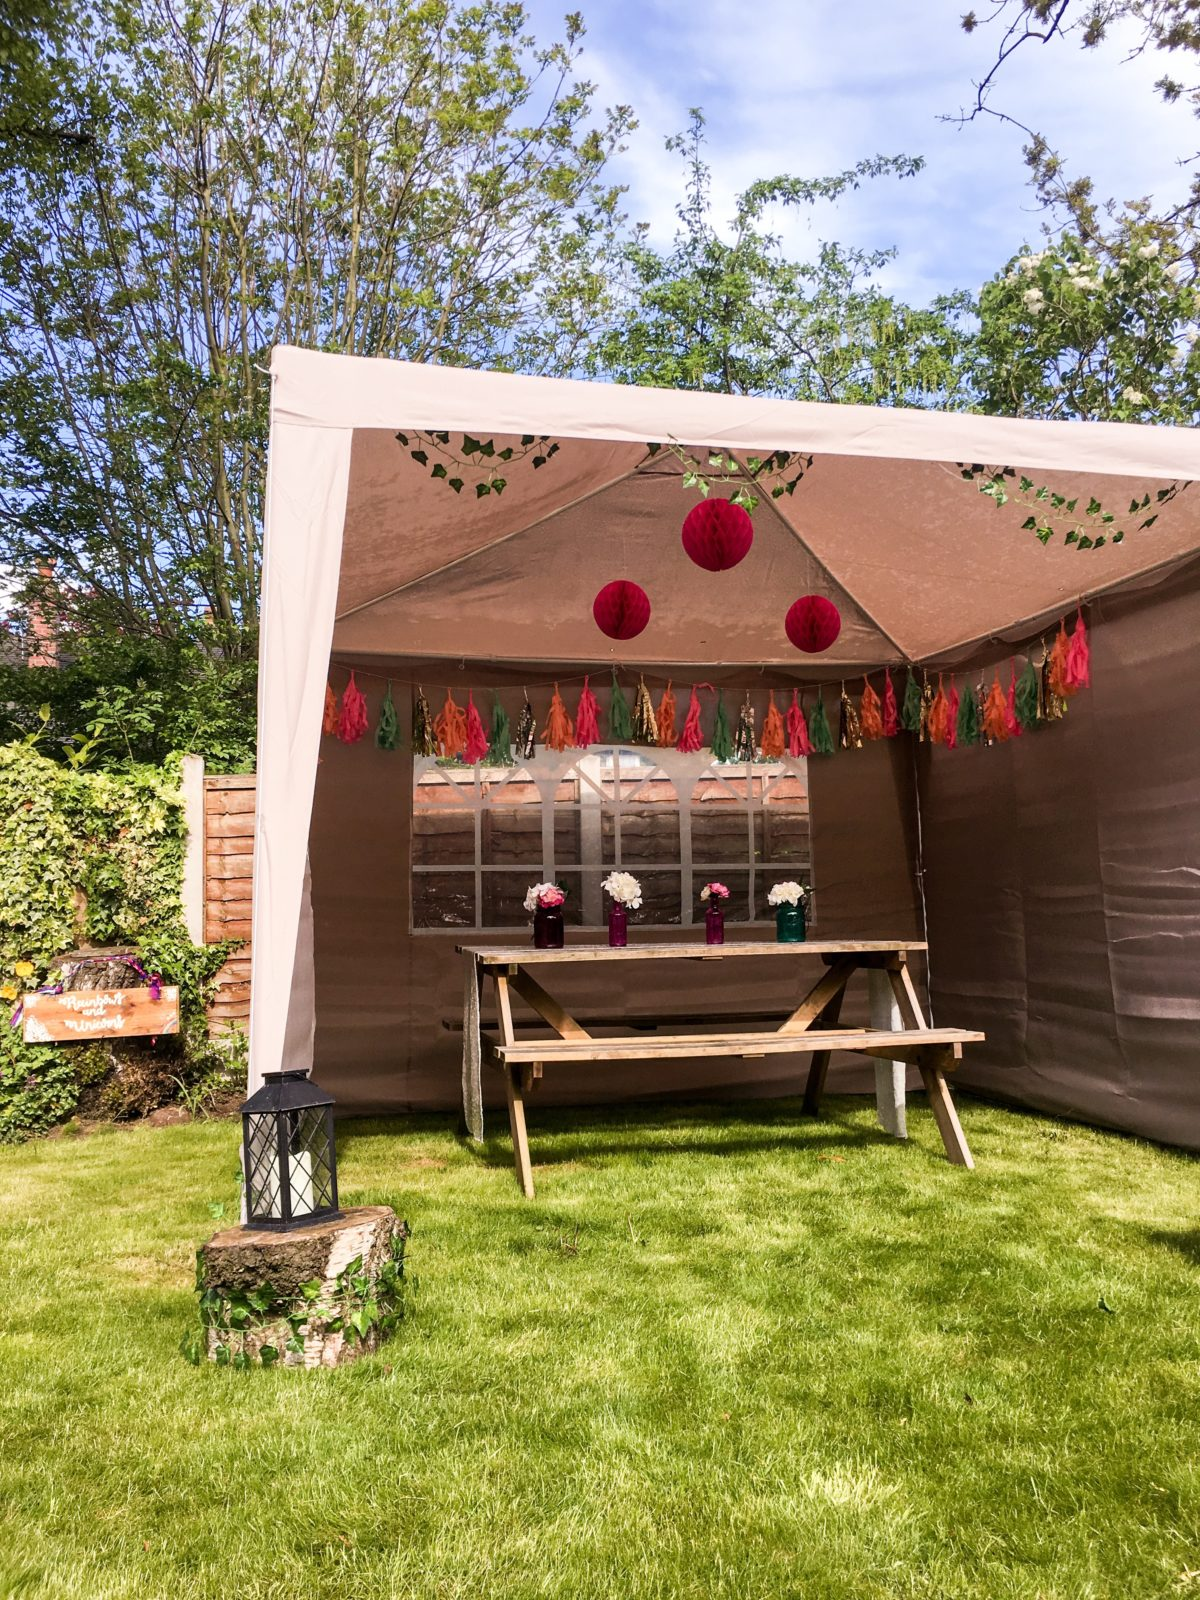 garden gazebo ideas for an outdoor garden party or festival themed birthday party